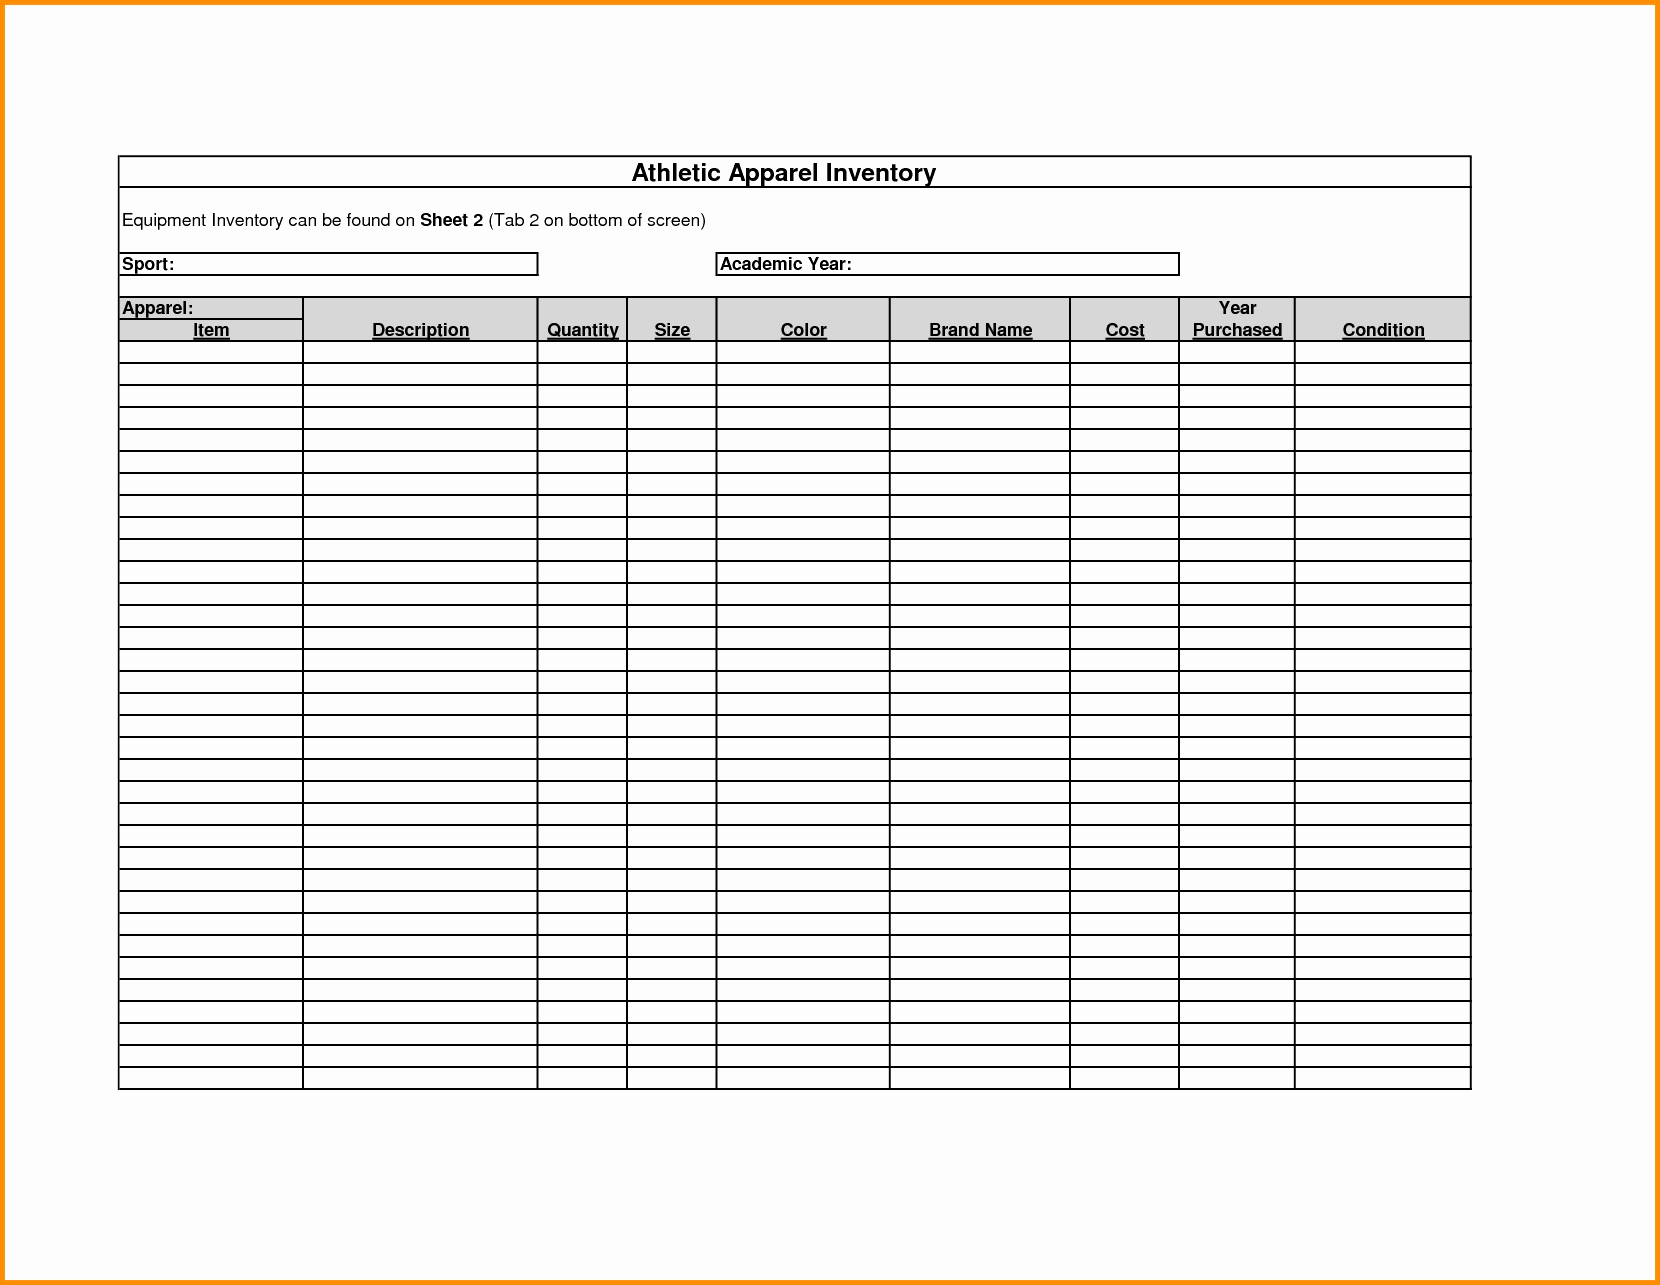 50 Awesome Fmla Tracking Spreadsheet Template   Documents Ideas Inside Fmla Tracking Spreadsheet